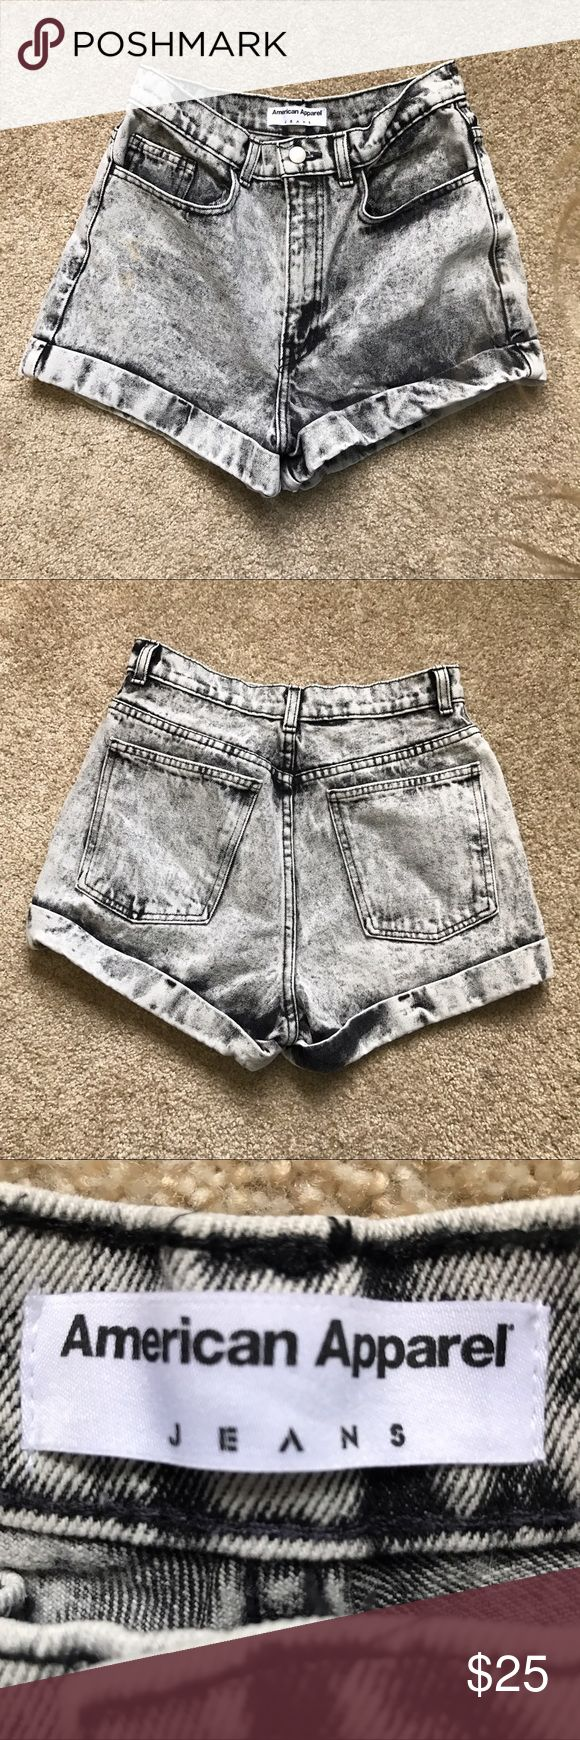 AA acid wash shorts Acid wash grey denim shorts!! High waisted and cuffed! Never worn, perfect condition. American Apparel Shorts Jean Shorts